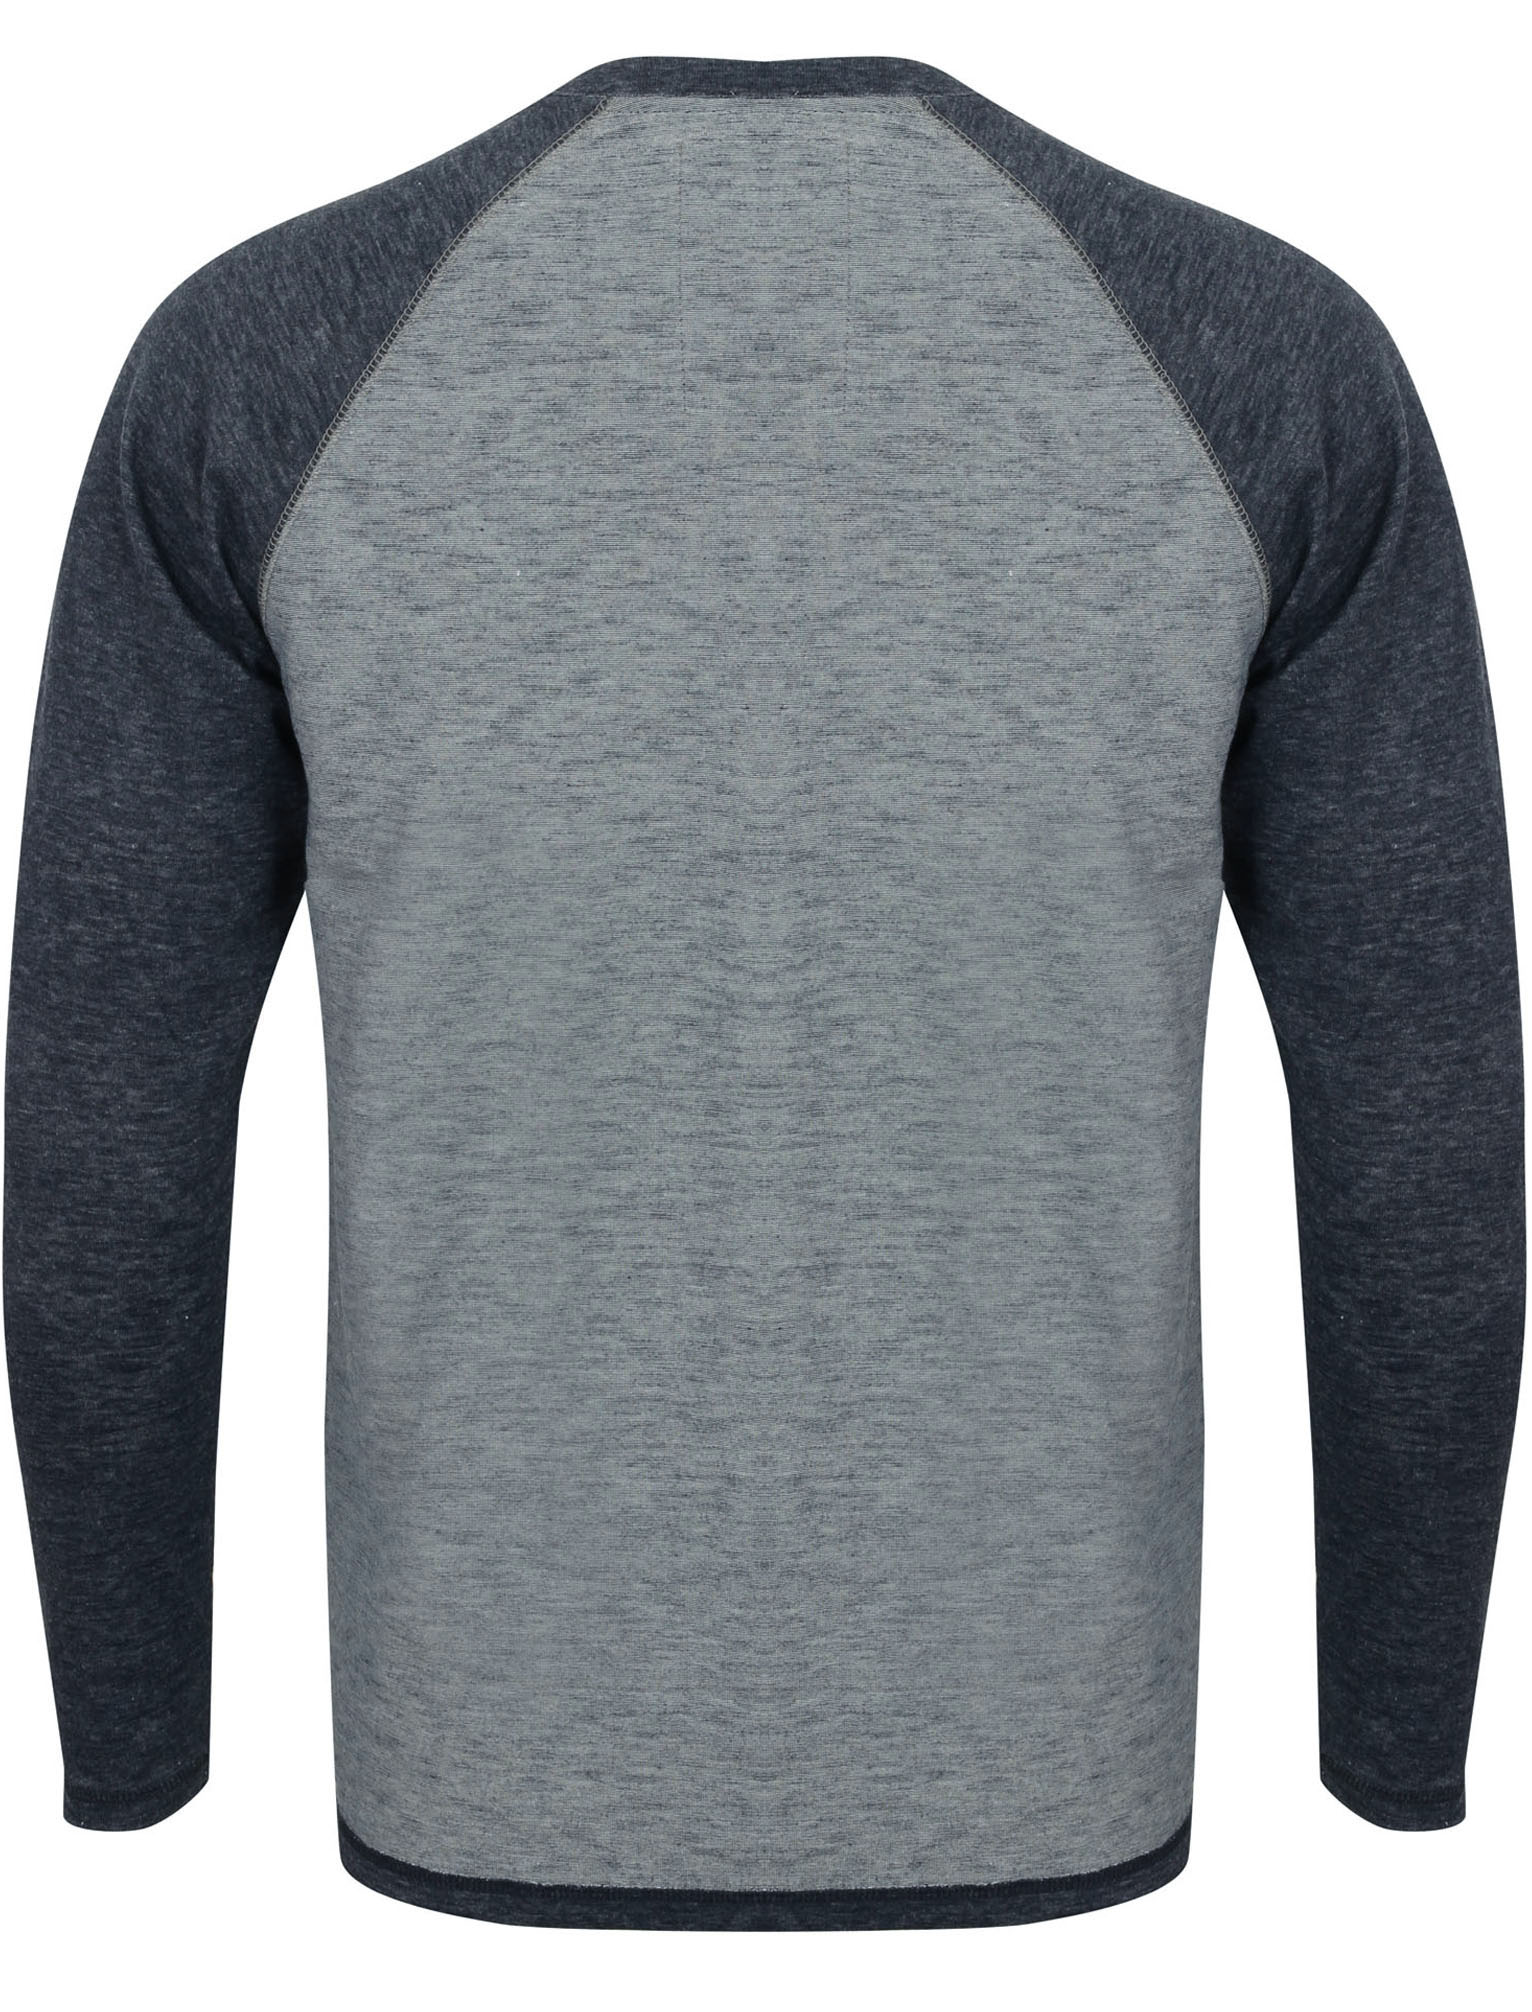 New-Mens-Tokyo-Laundry-Branded-Soft-Jersey-Long-Sleeve-Tops-T-Shirts-Size-S-XL thumbnail 17